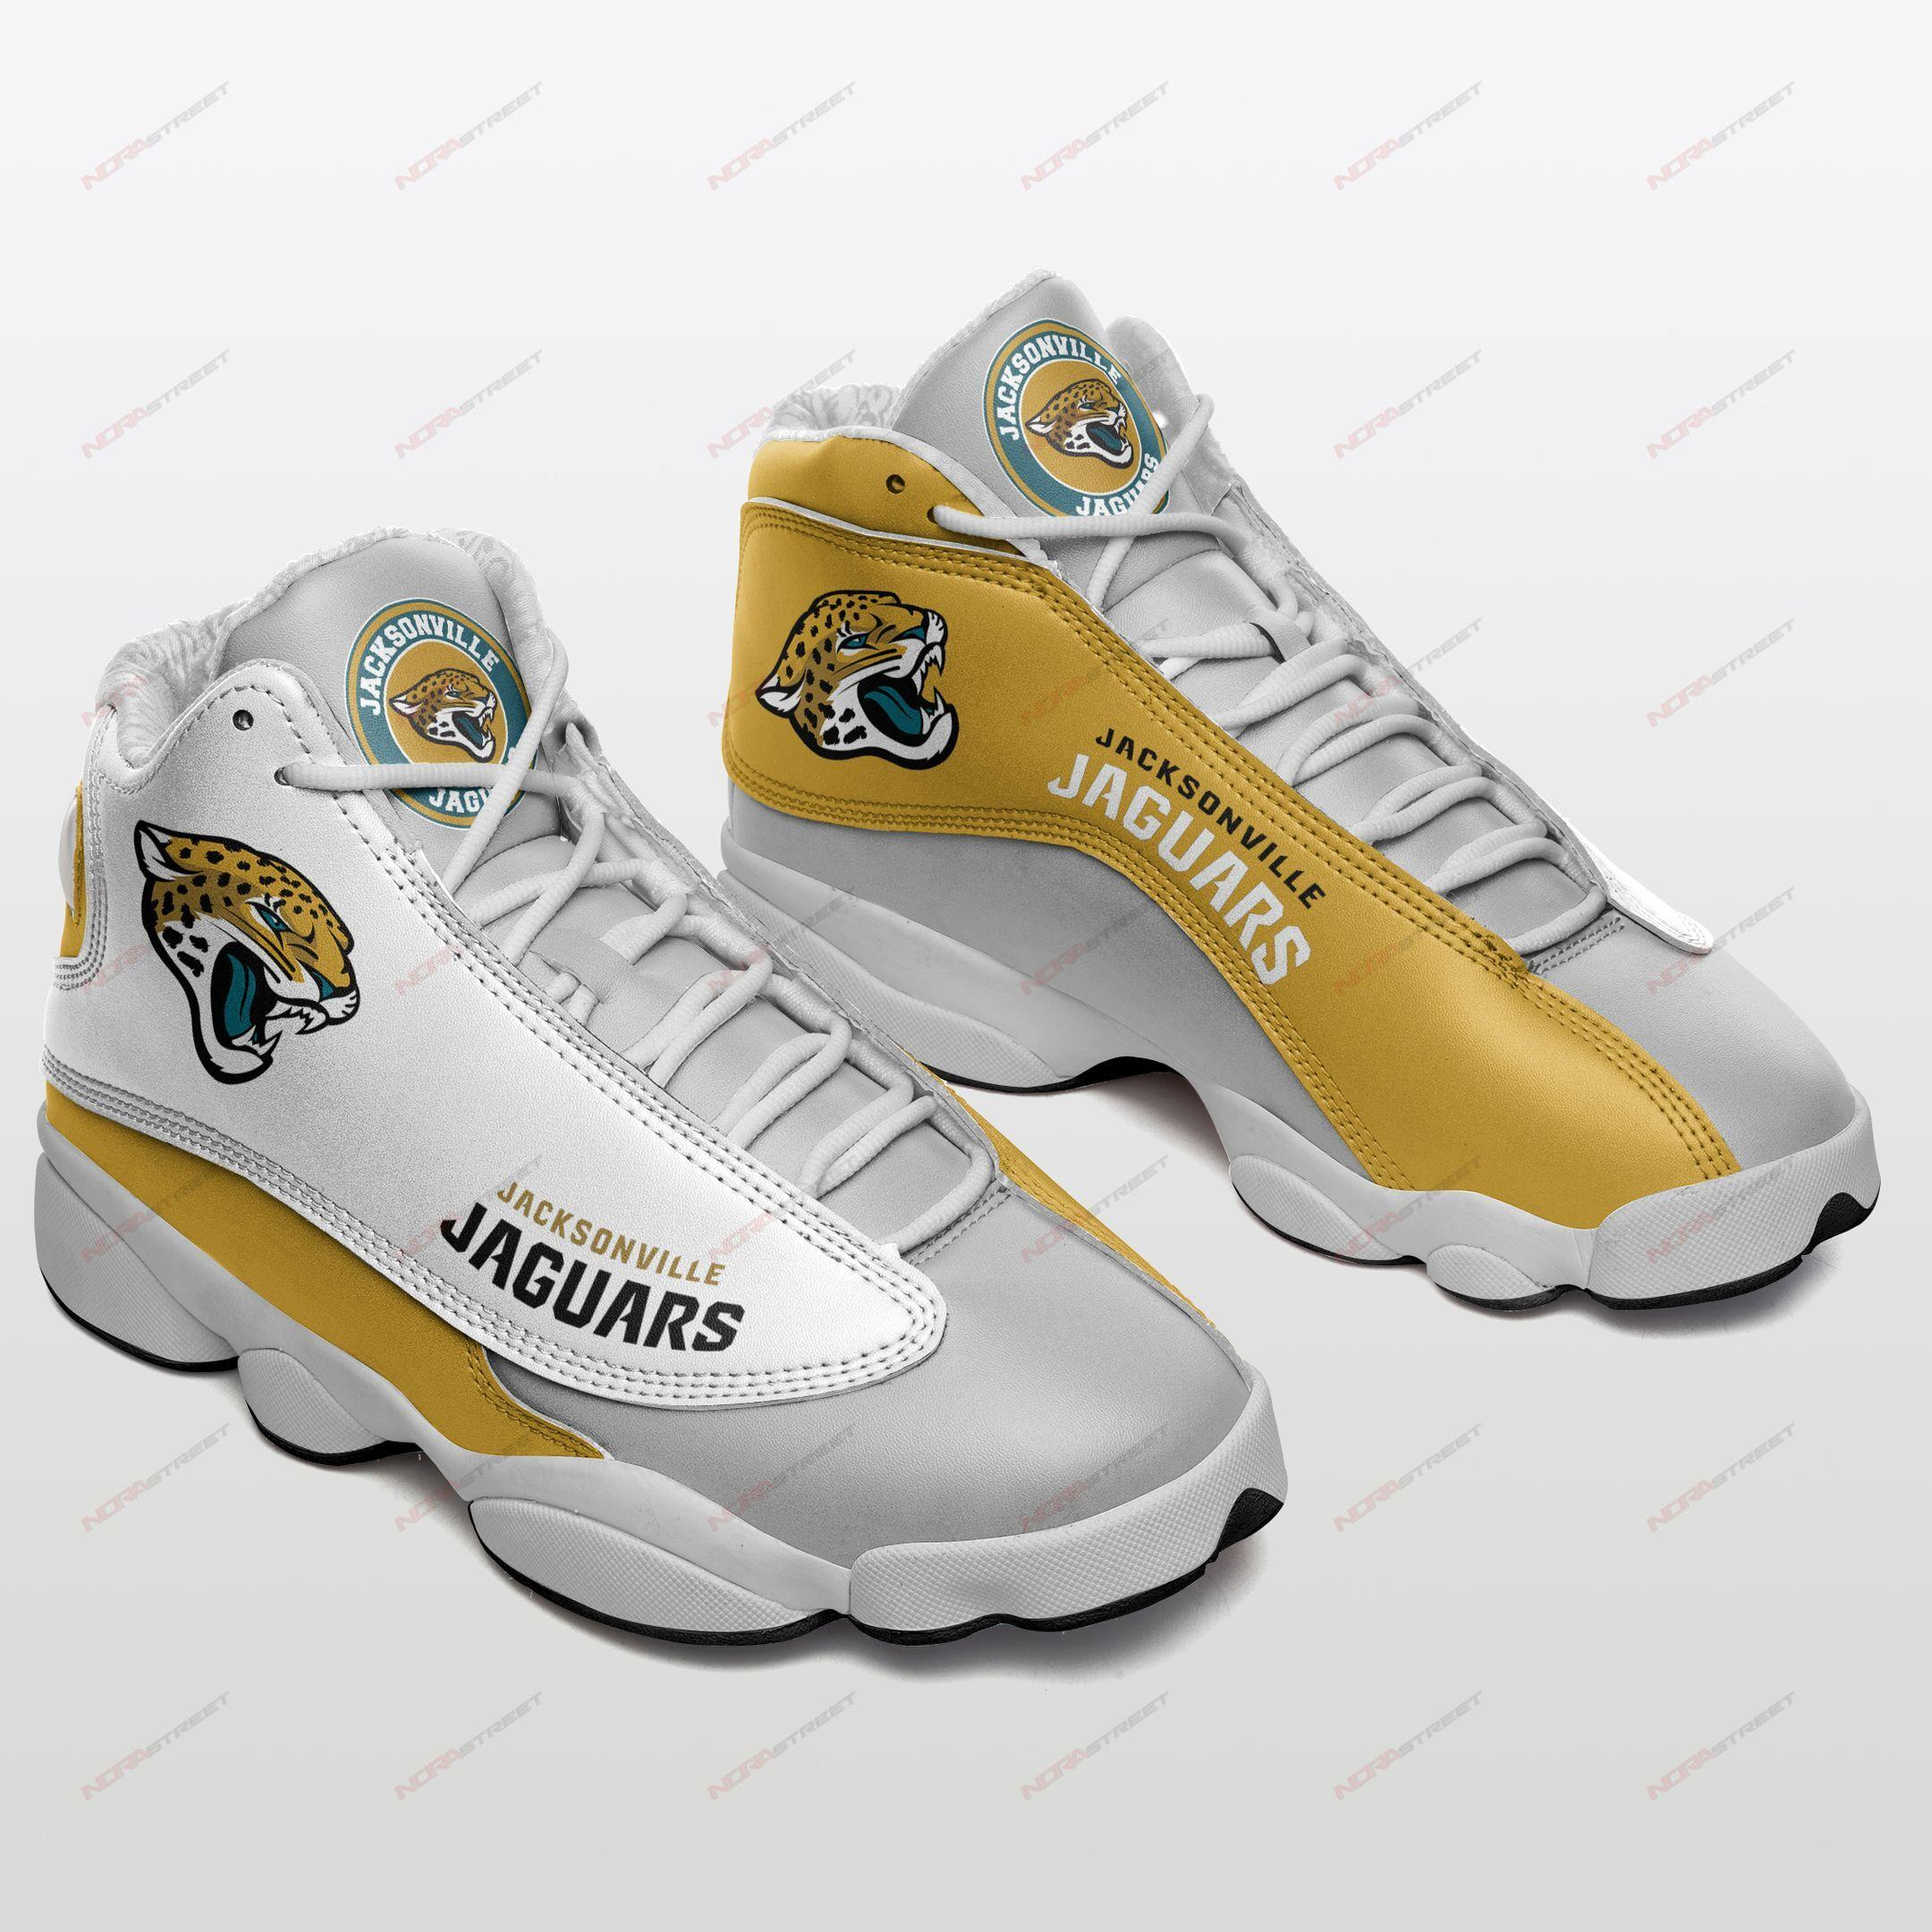 Jacksonville Jaguars Air Jordan 13 Sneakers Sport Shoes